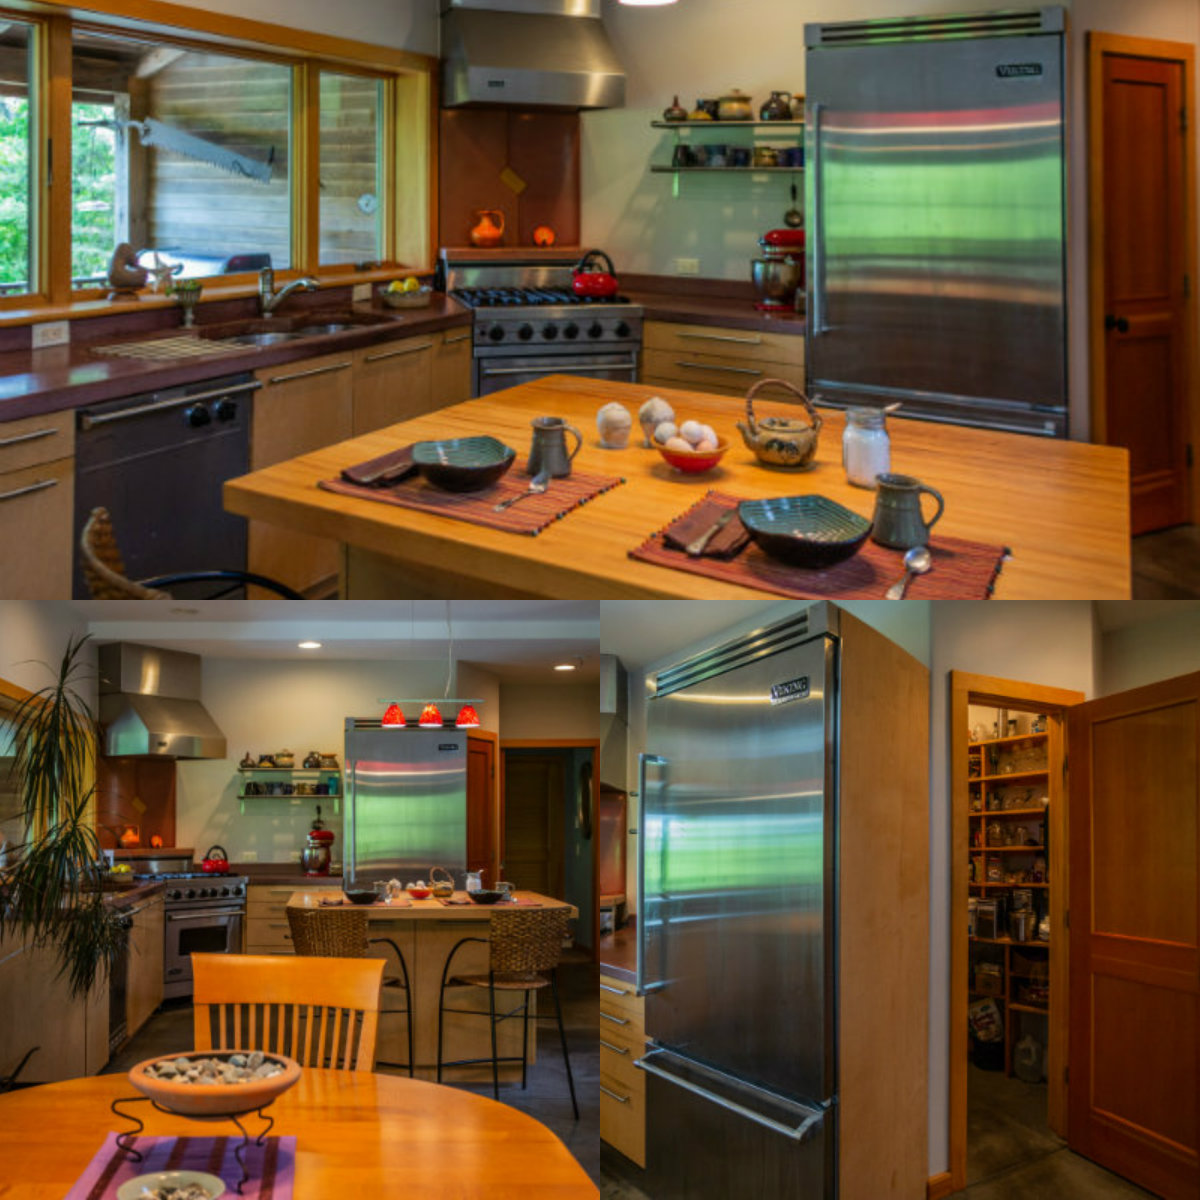 Images of kitchen at 972 Stony Brook Road in Brewster Cape Cod MA